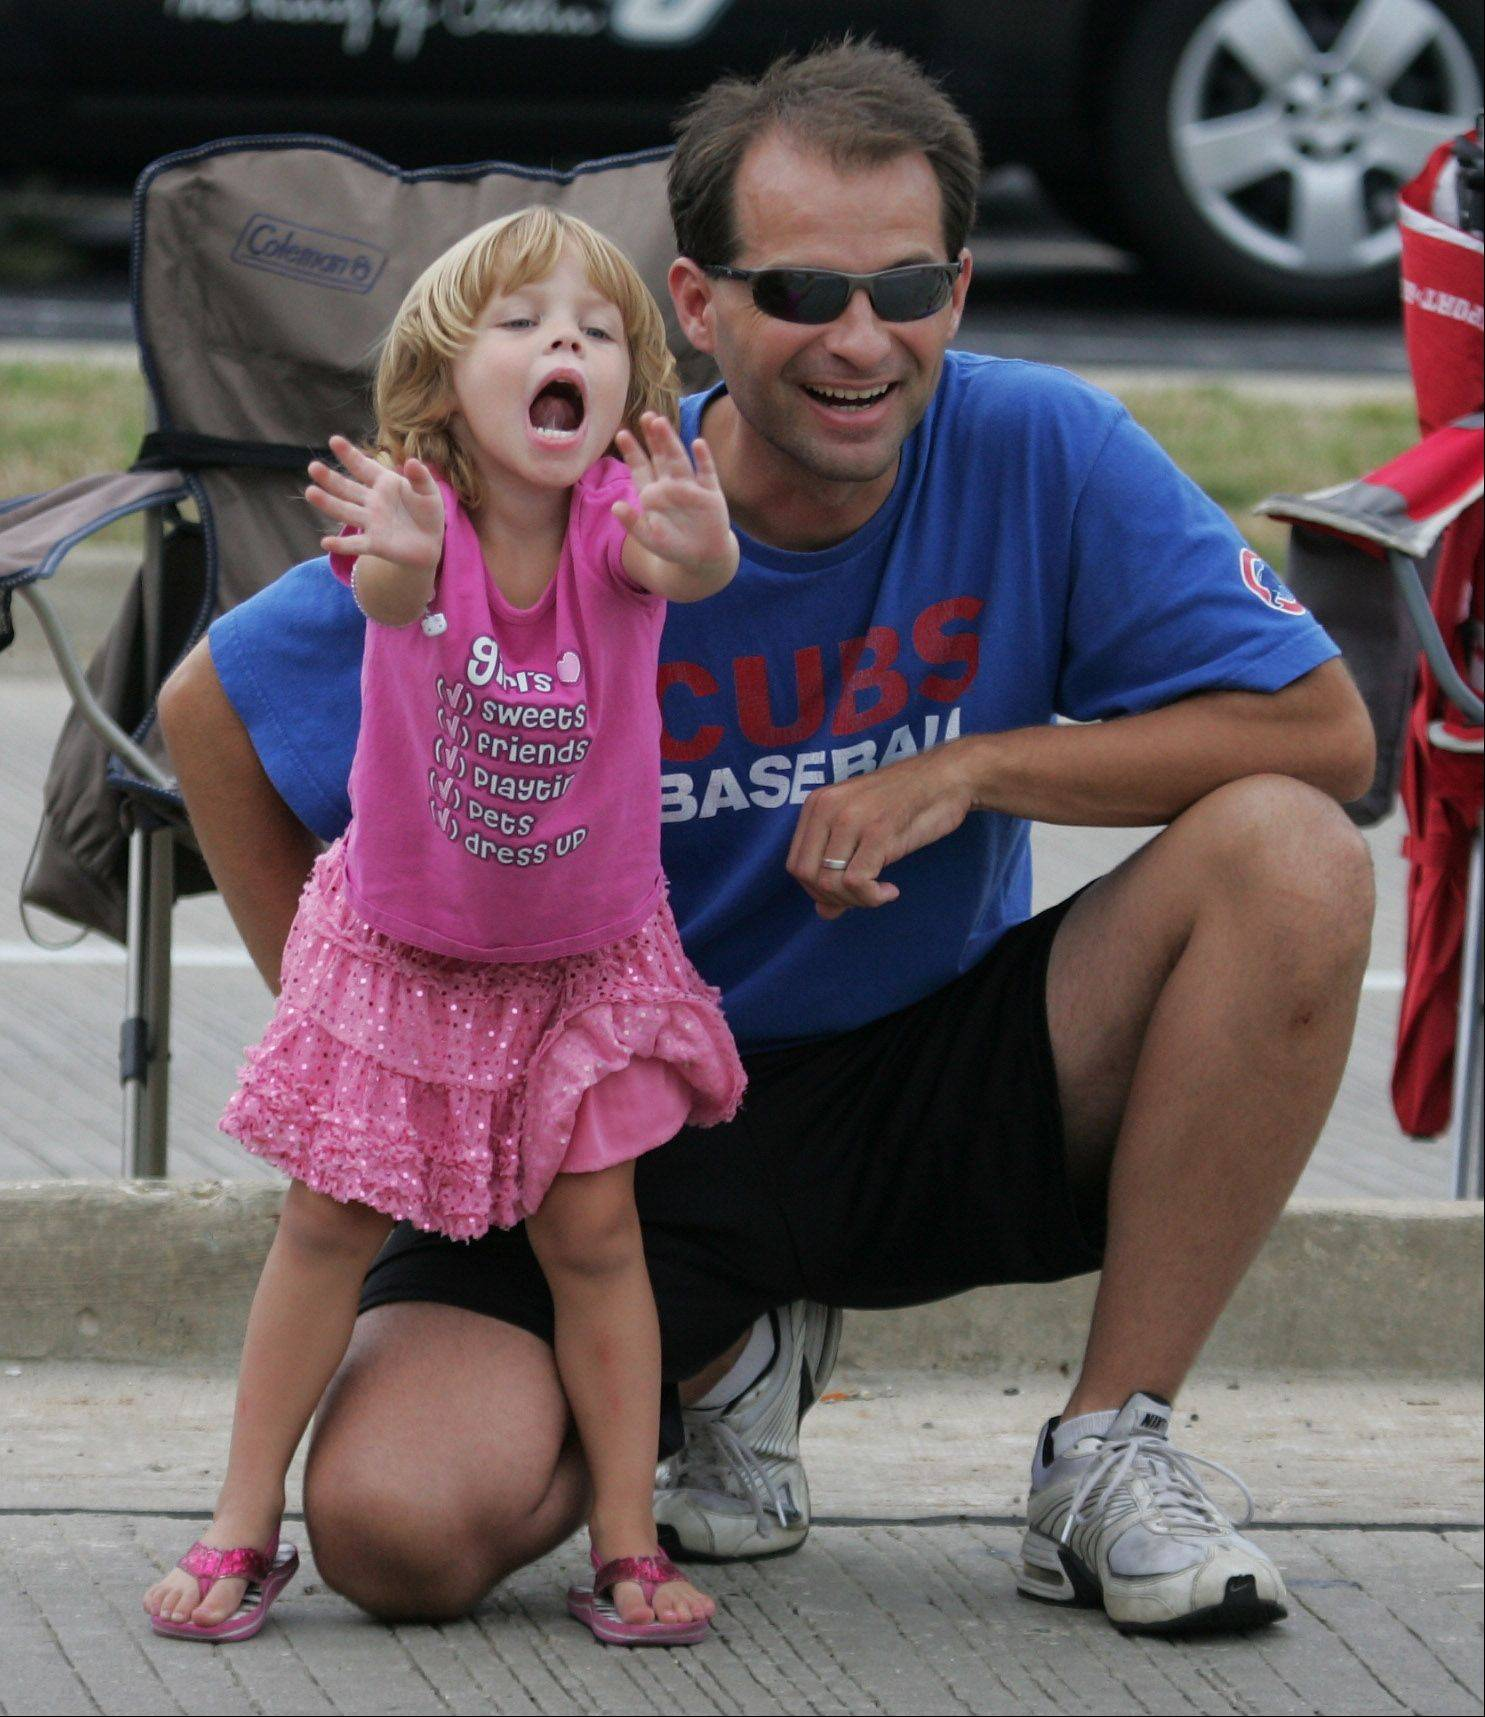 Natalie Miller, 3, of Barrington, screams for candy as she watches the parade with her father, Todd, during the Lake Zurich Alpine Fest parade Sunday along Route 22.